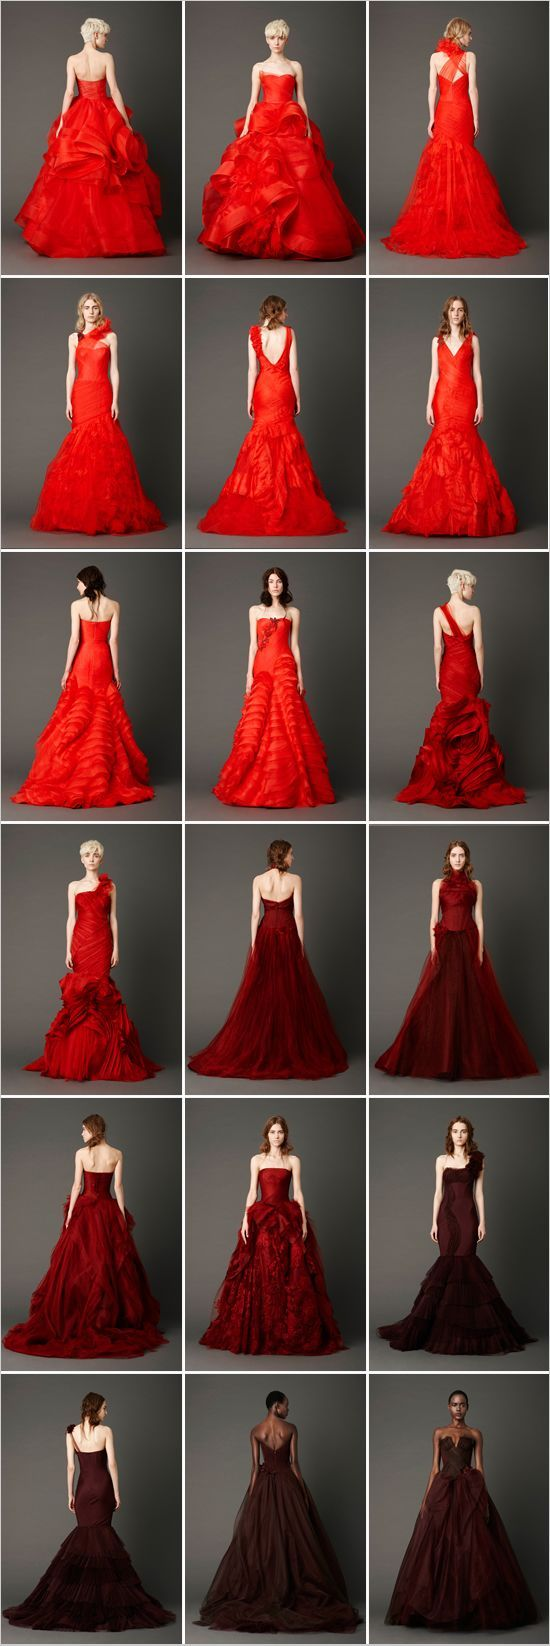 Red wedding dresses vera wang  Man I wish I had the balls and budget for one of these Vera Wang